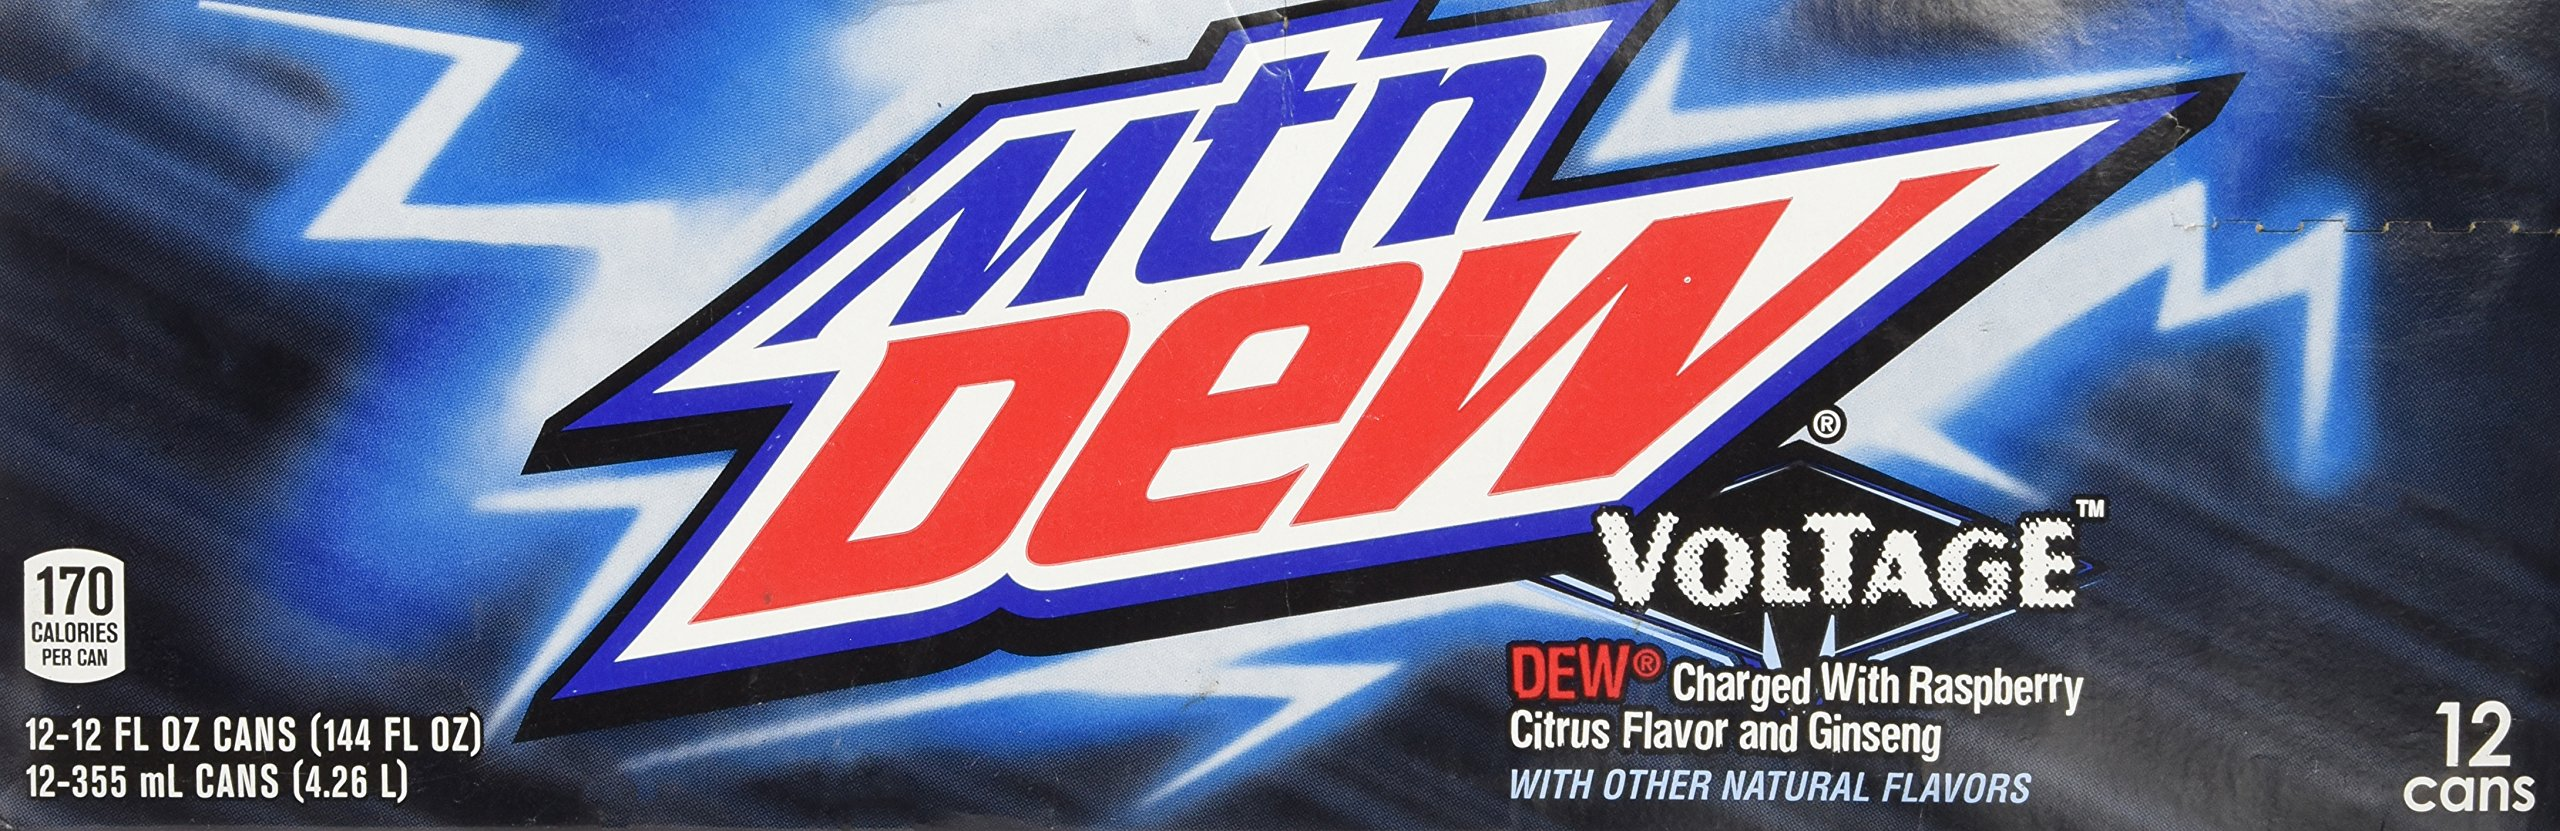 Mountain Dew Voltage Raspberry Ginseng Citrus Soda, 12 Ounce (12 Cans)